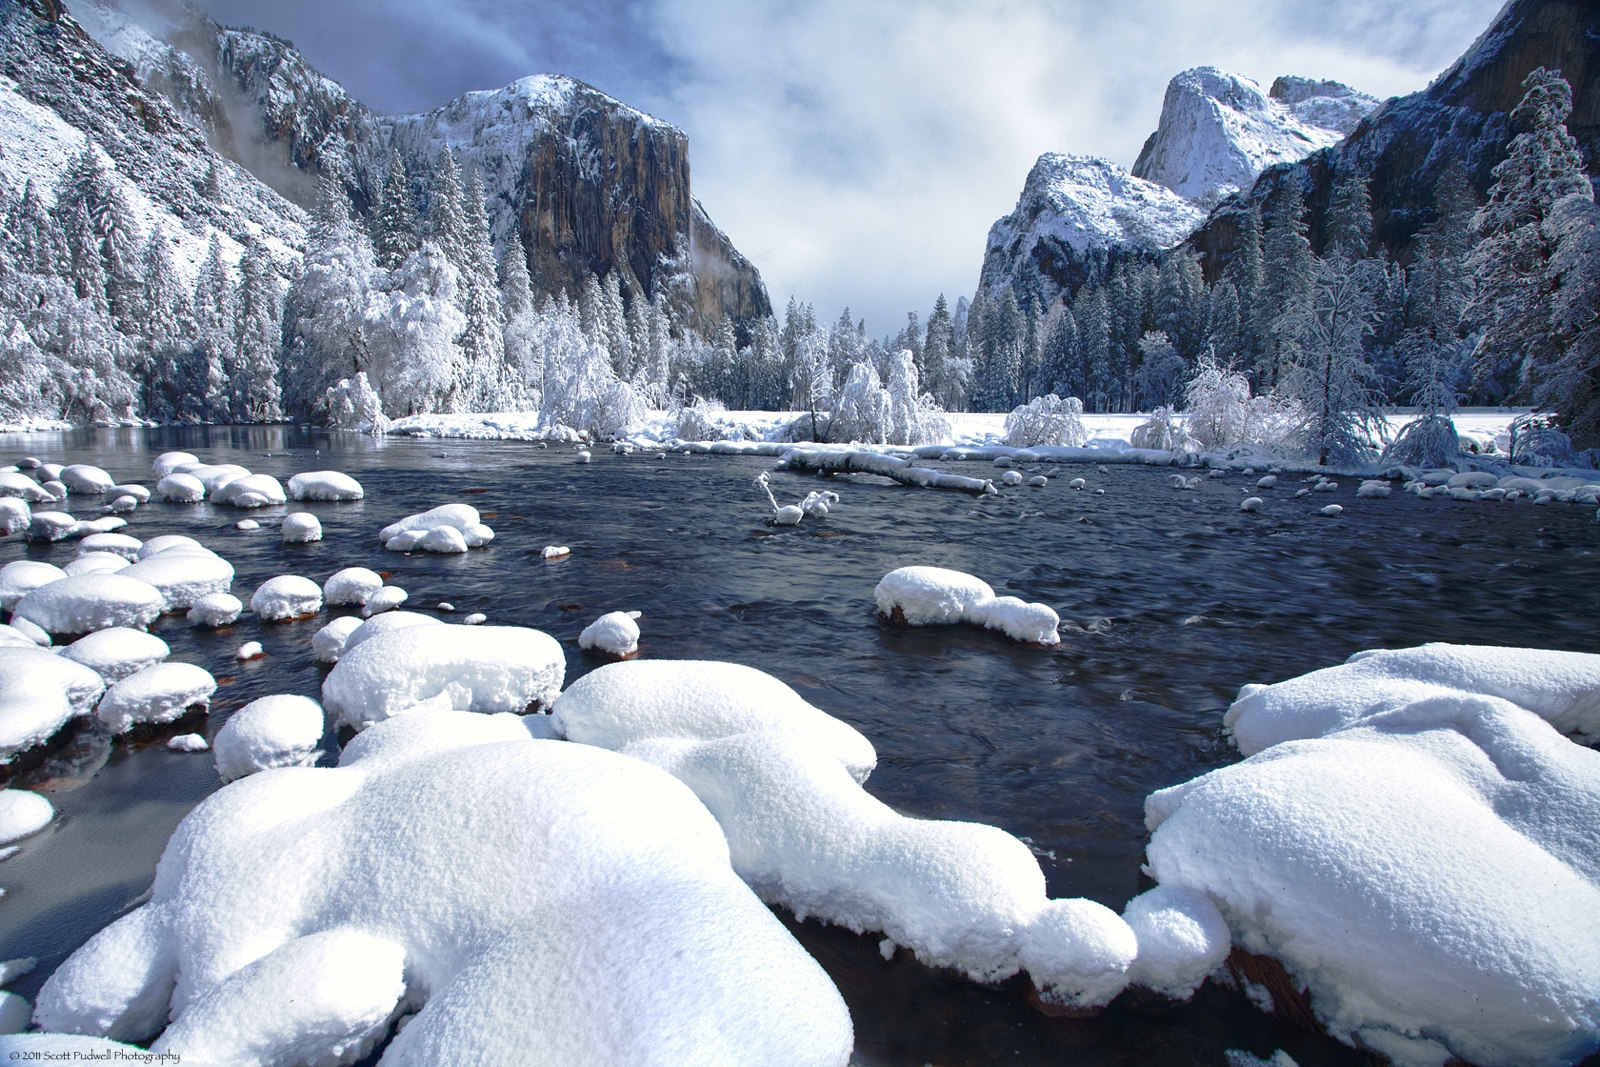 Yosemite national park california united states Beautiful snowfall pictures